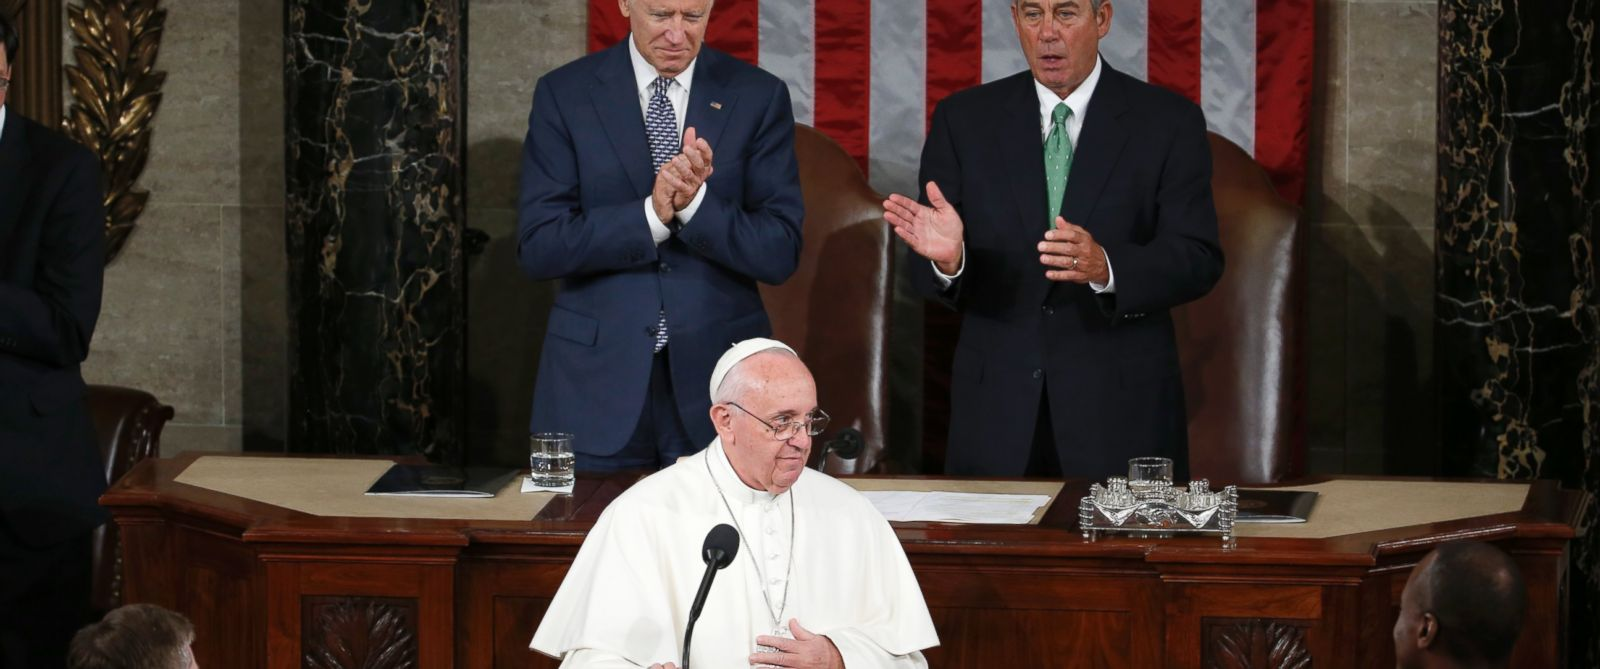 PHOTO: Vice President Joe Biden and House Speaker John Boehner of Ohio applaud Pope Francis after his address before a joint meeting of Congress on Capitol Hill in Washington, Sept. 24, 2015, making history as the first pontiff to do so.